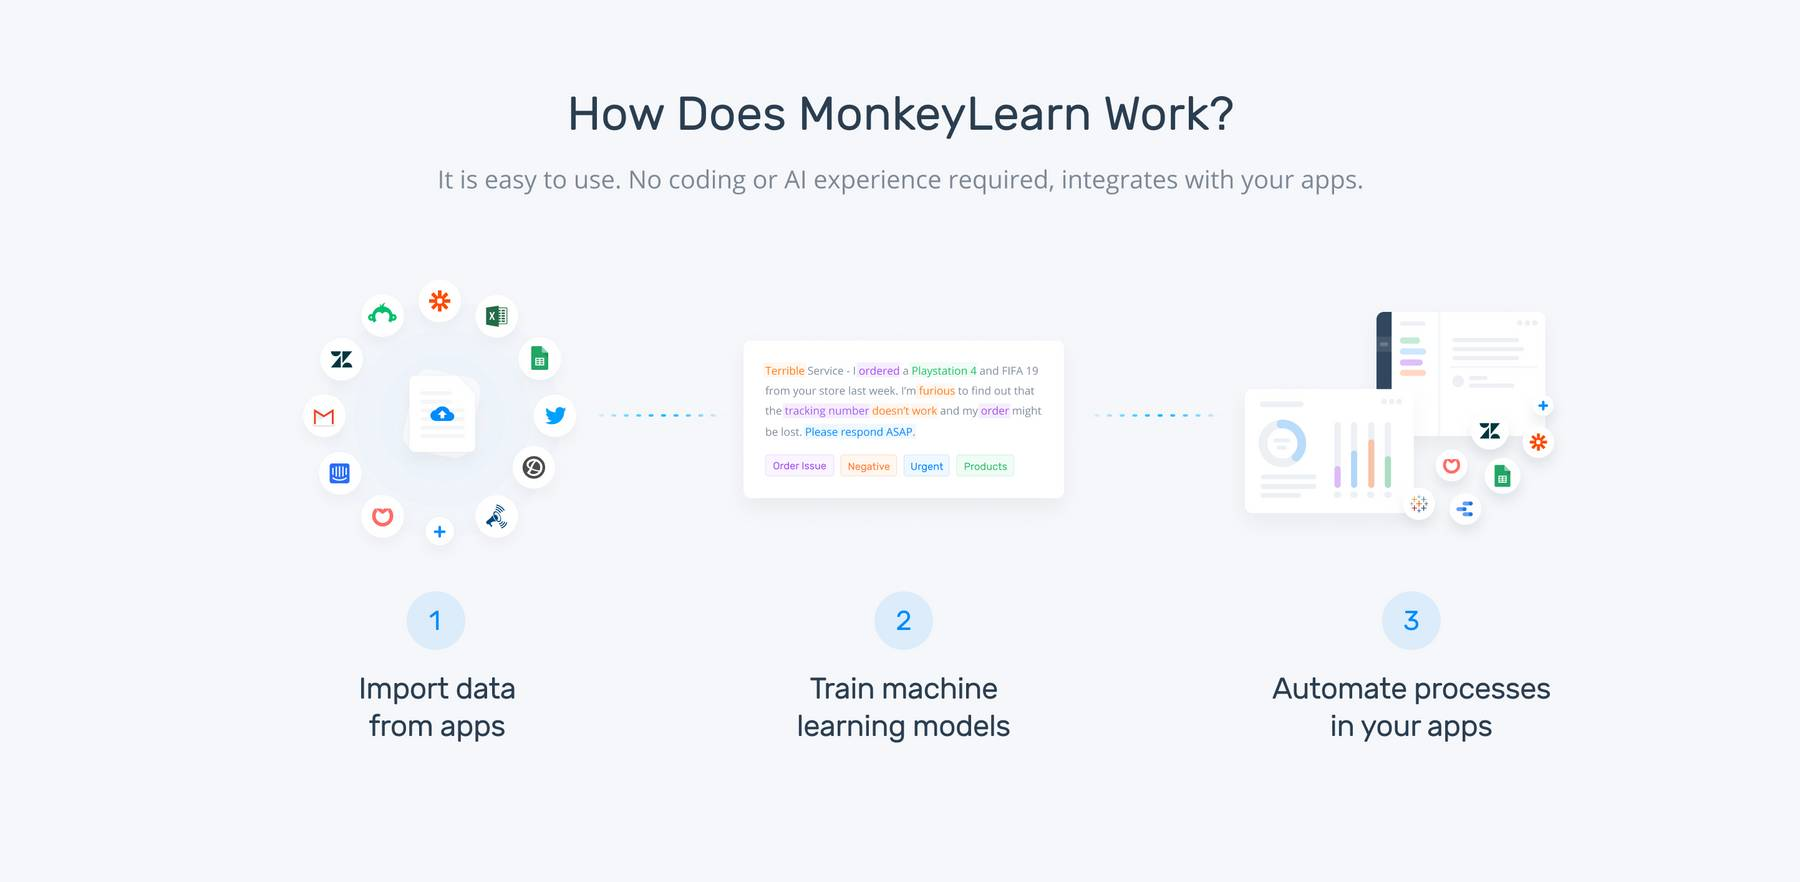 An explanation of how MonkeyLearn works: import data from apps, train machine learning models to analyze voice of customer data, automate processes